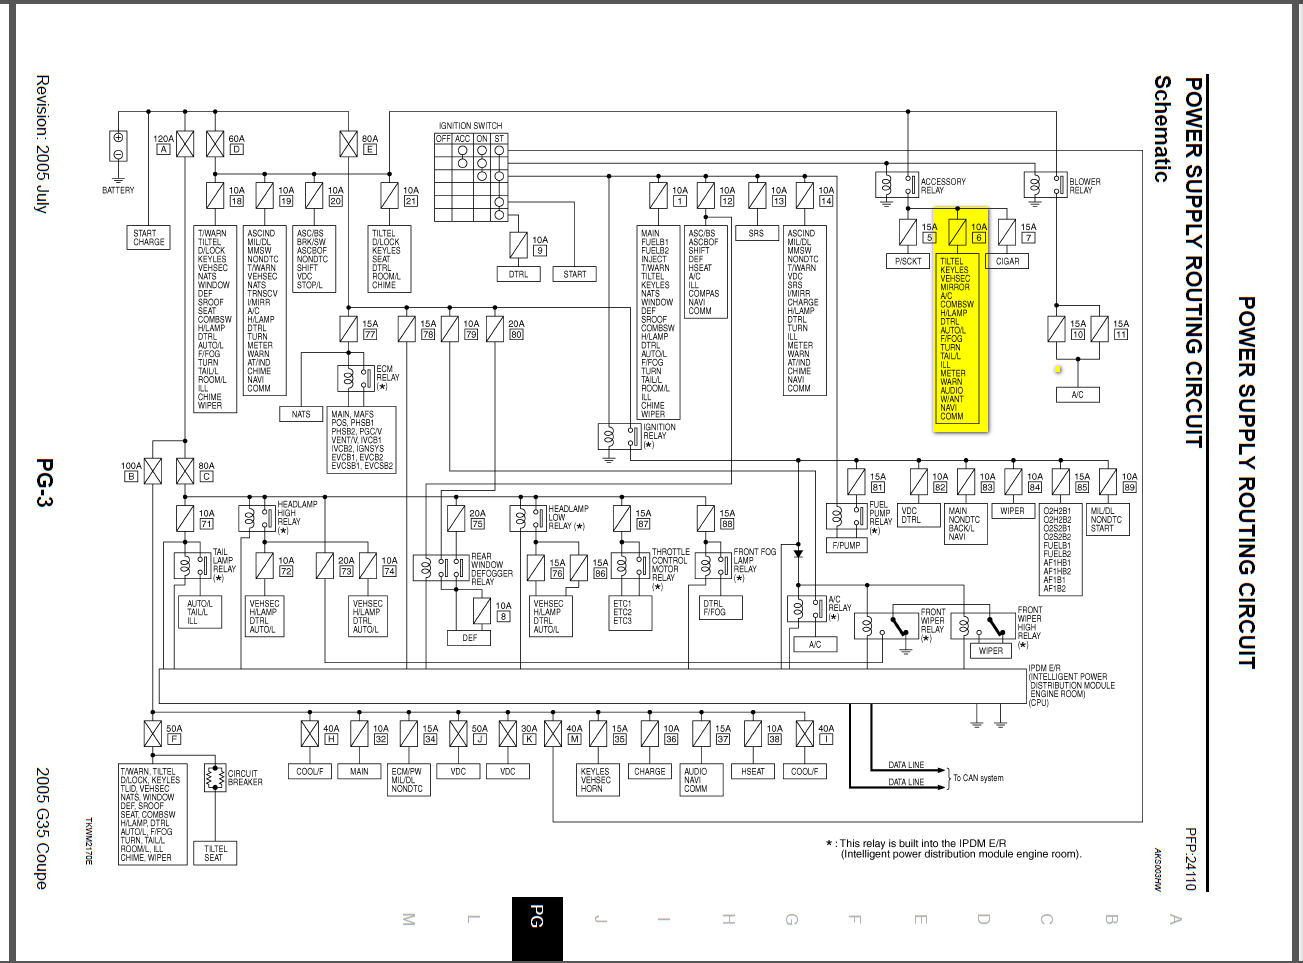 2005 Fuse Box Diagram Image Details Kia Optima Infiniti G35